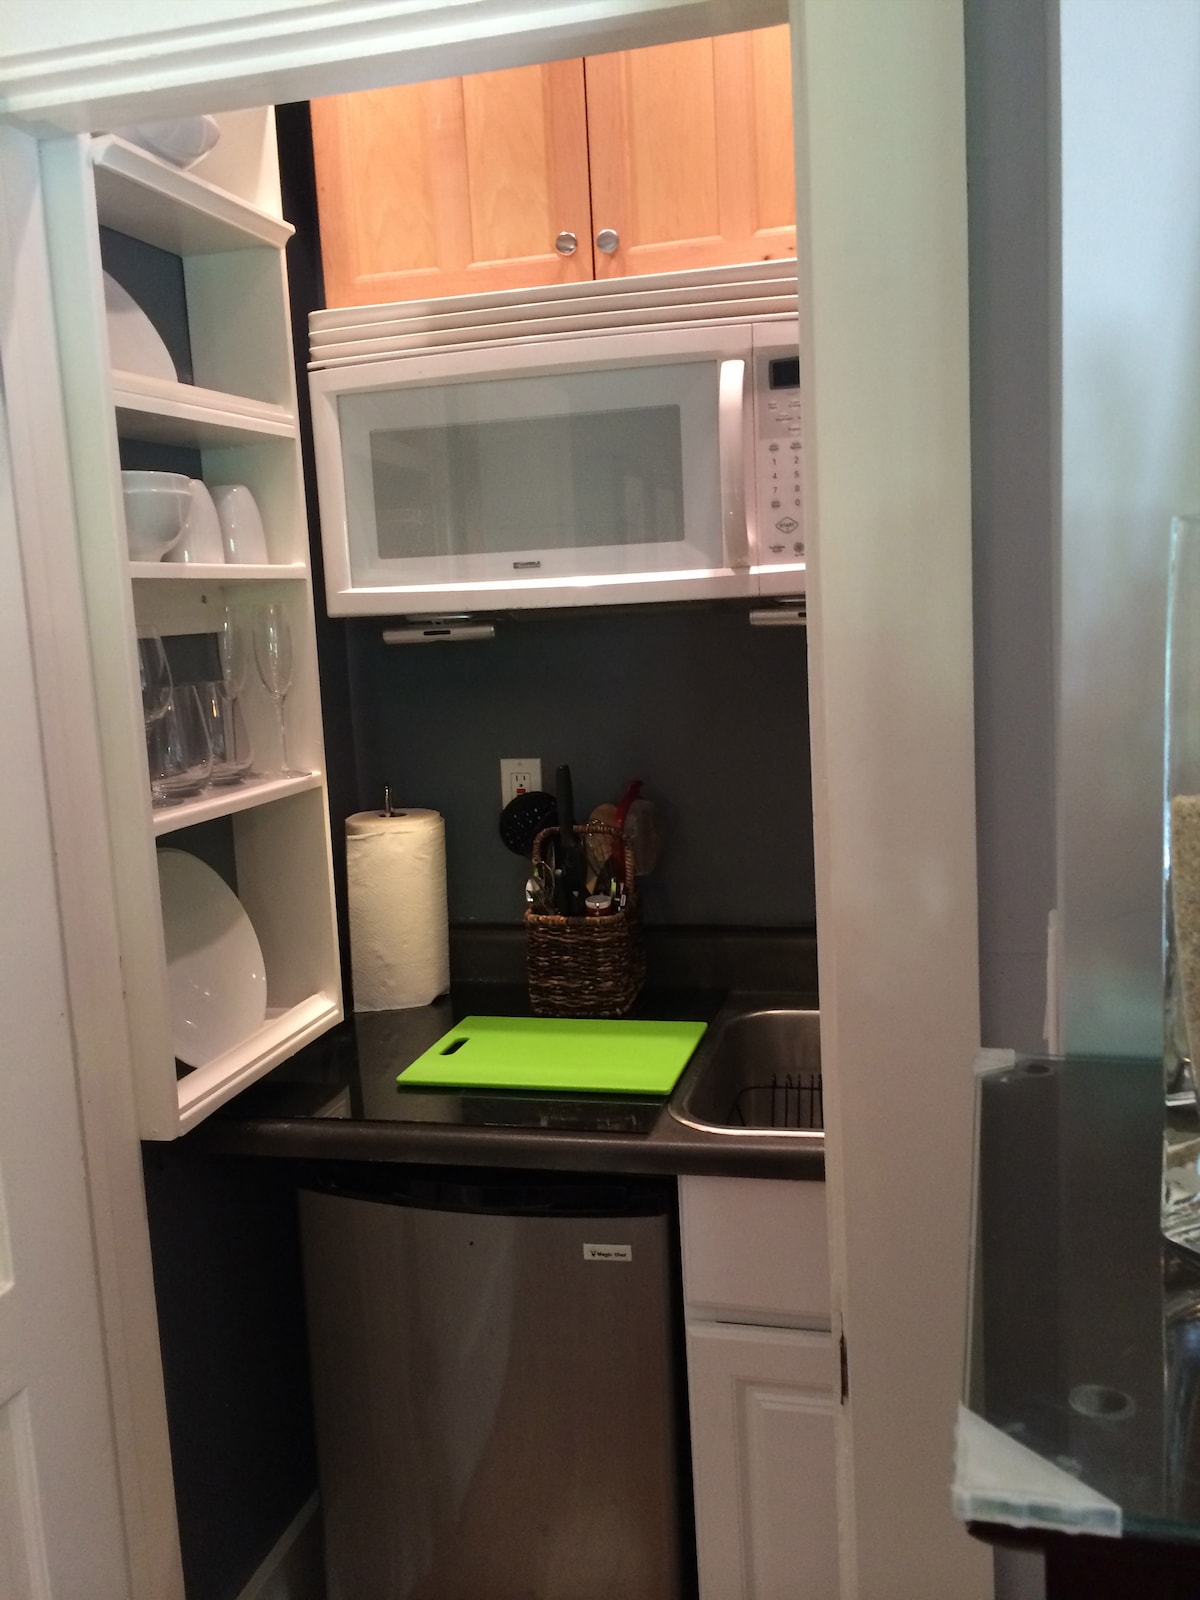 Small Kitchenette with Microwave, Kourig Coffee maker, sink, fridge, induction plate, toaster and all plates and cups etc.